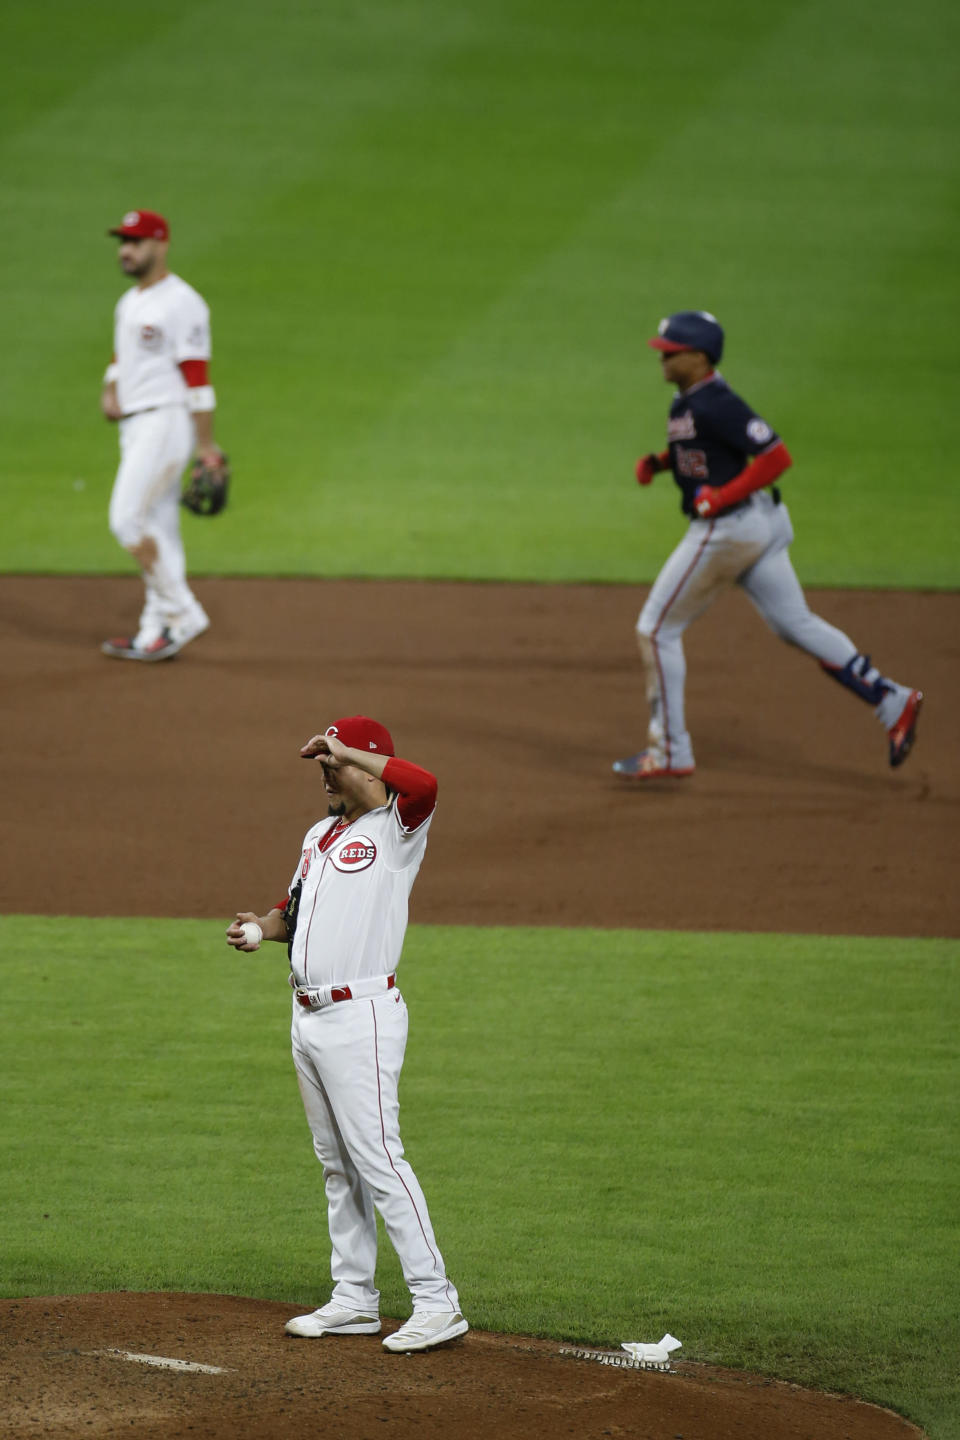 Washington Nationals' Juan Soto, top right, rounds the bases after hitting a home run against Cincinnati Reds' Luis Castillo, foreground, during the sixth inning of a baseball game Thursday, Sept. 23, 2021, in Cincinnati. (AP Photo/Jay LaPrete)